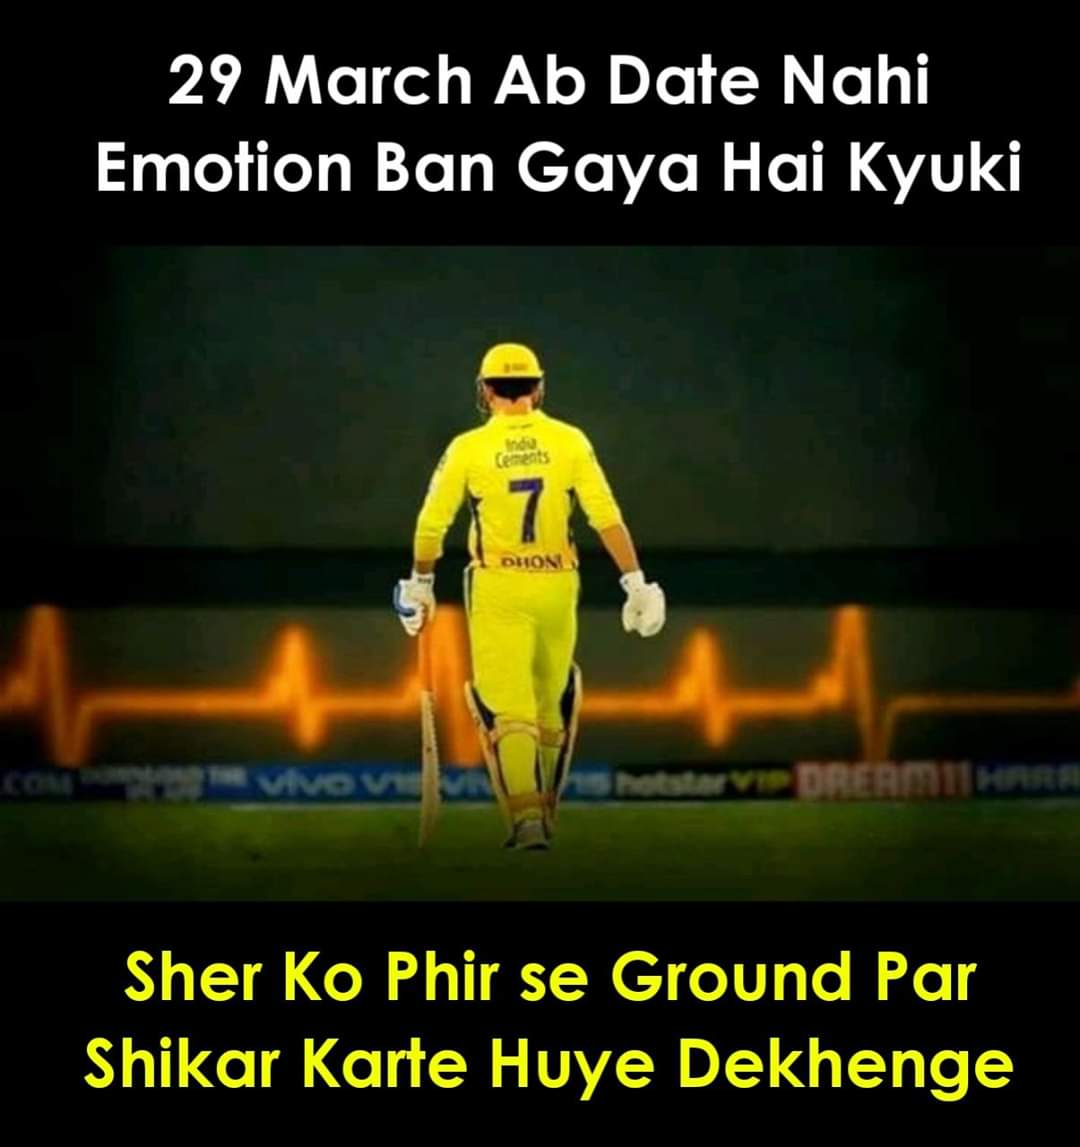 RT if you are waiting for 29 March... #MSDhoni #Dhoni #IPLT20 #CSK @CSKFansOfficial @CskIPLTeam @ChennaiIPL